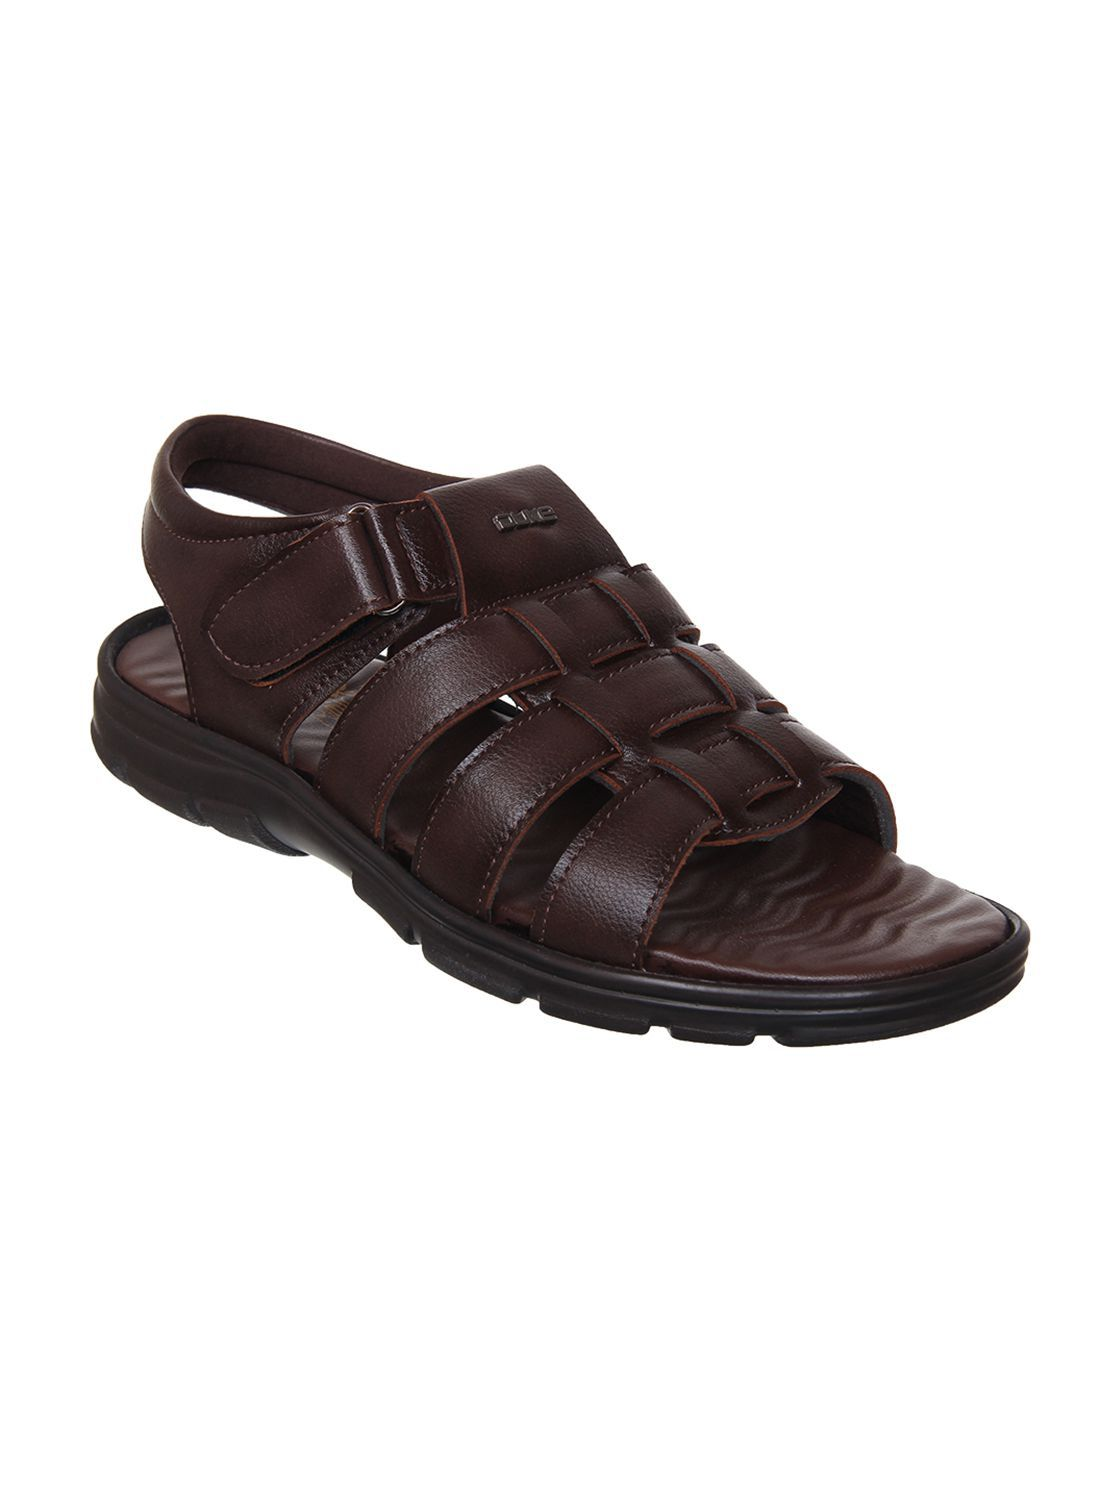 d671c9e6f Duke Brown Sandals Price in India- Buy Duke Brown Sandals Online at Snapdeal